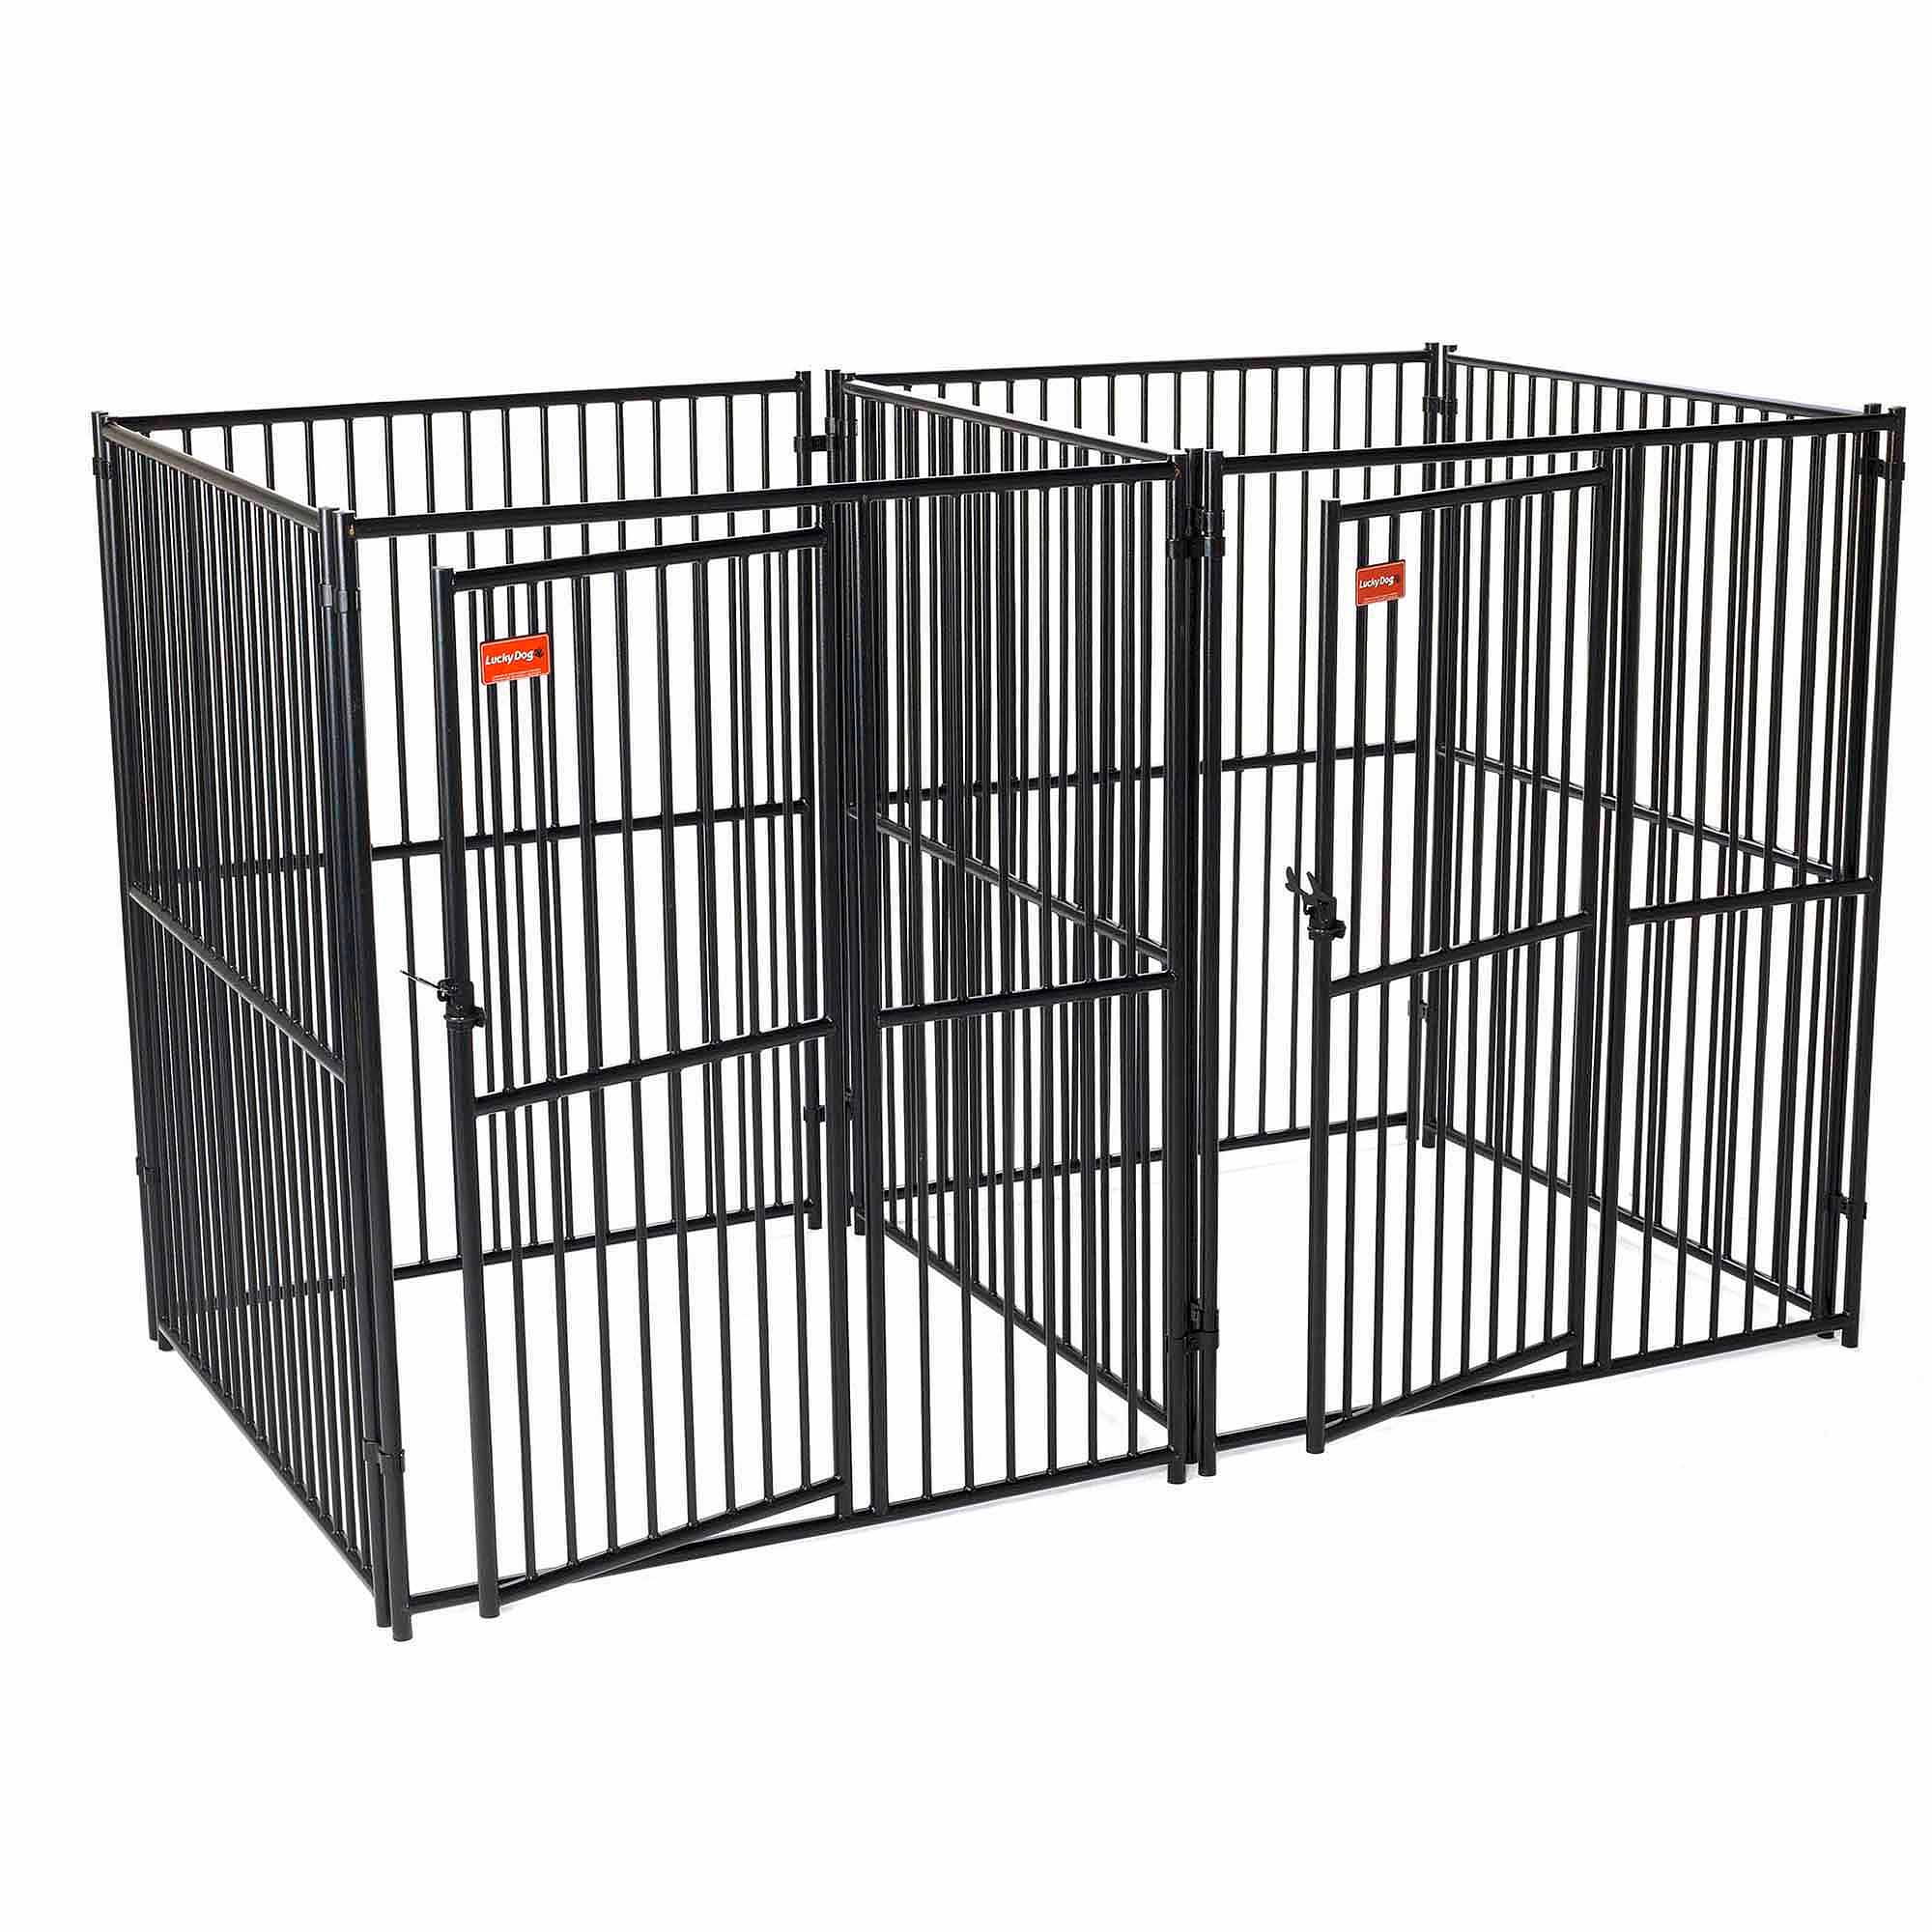 Lucky Dog European Style 5' x 5' 2-Run Kennel with Common Wall